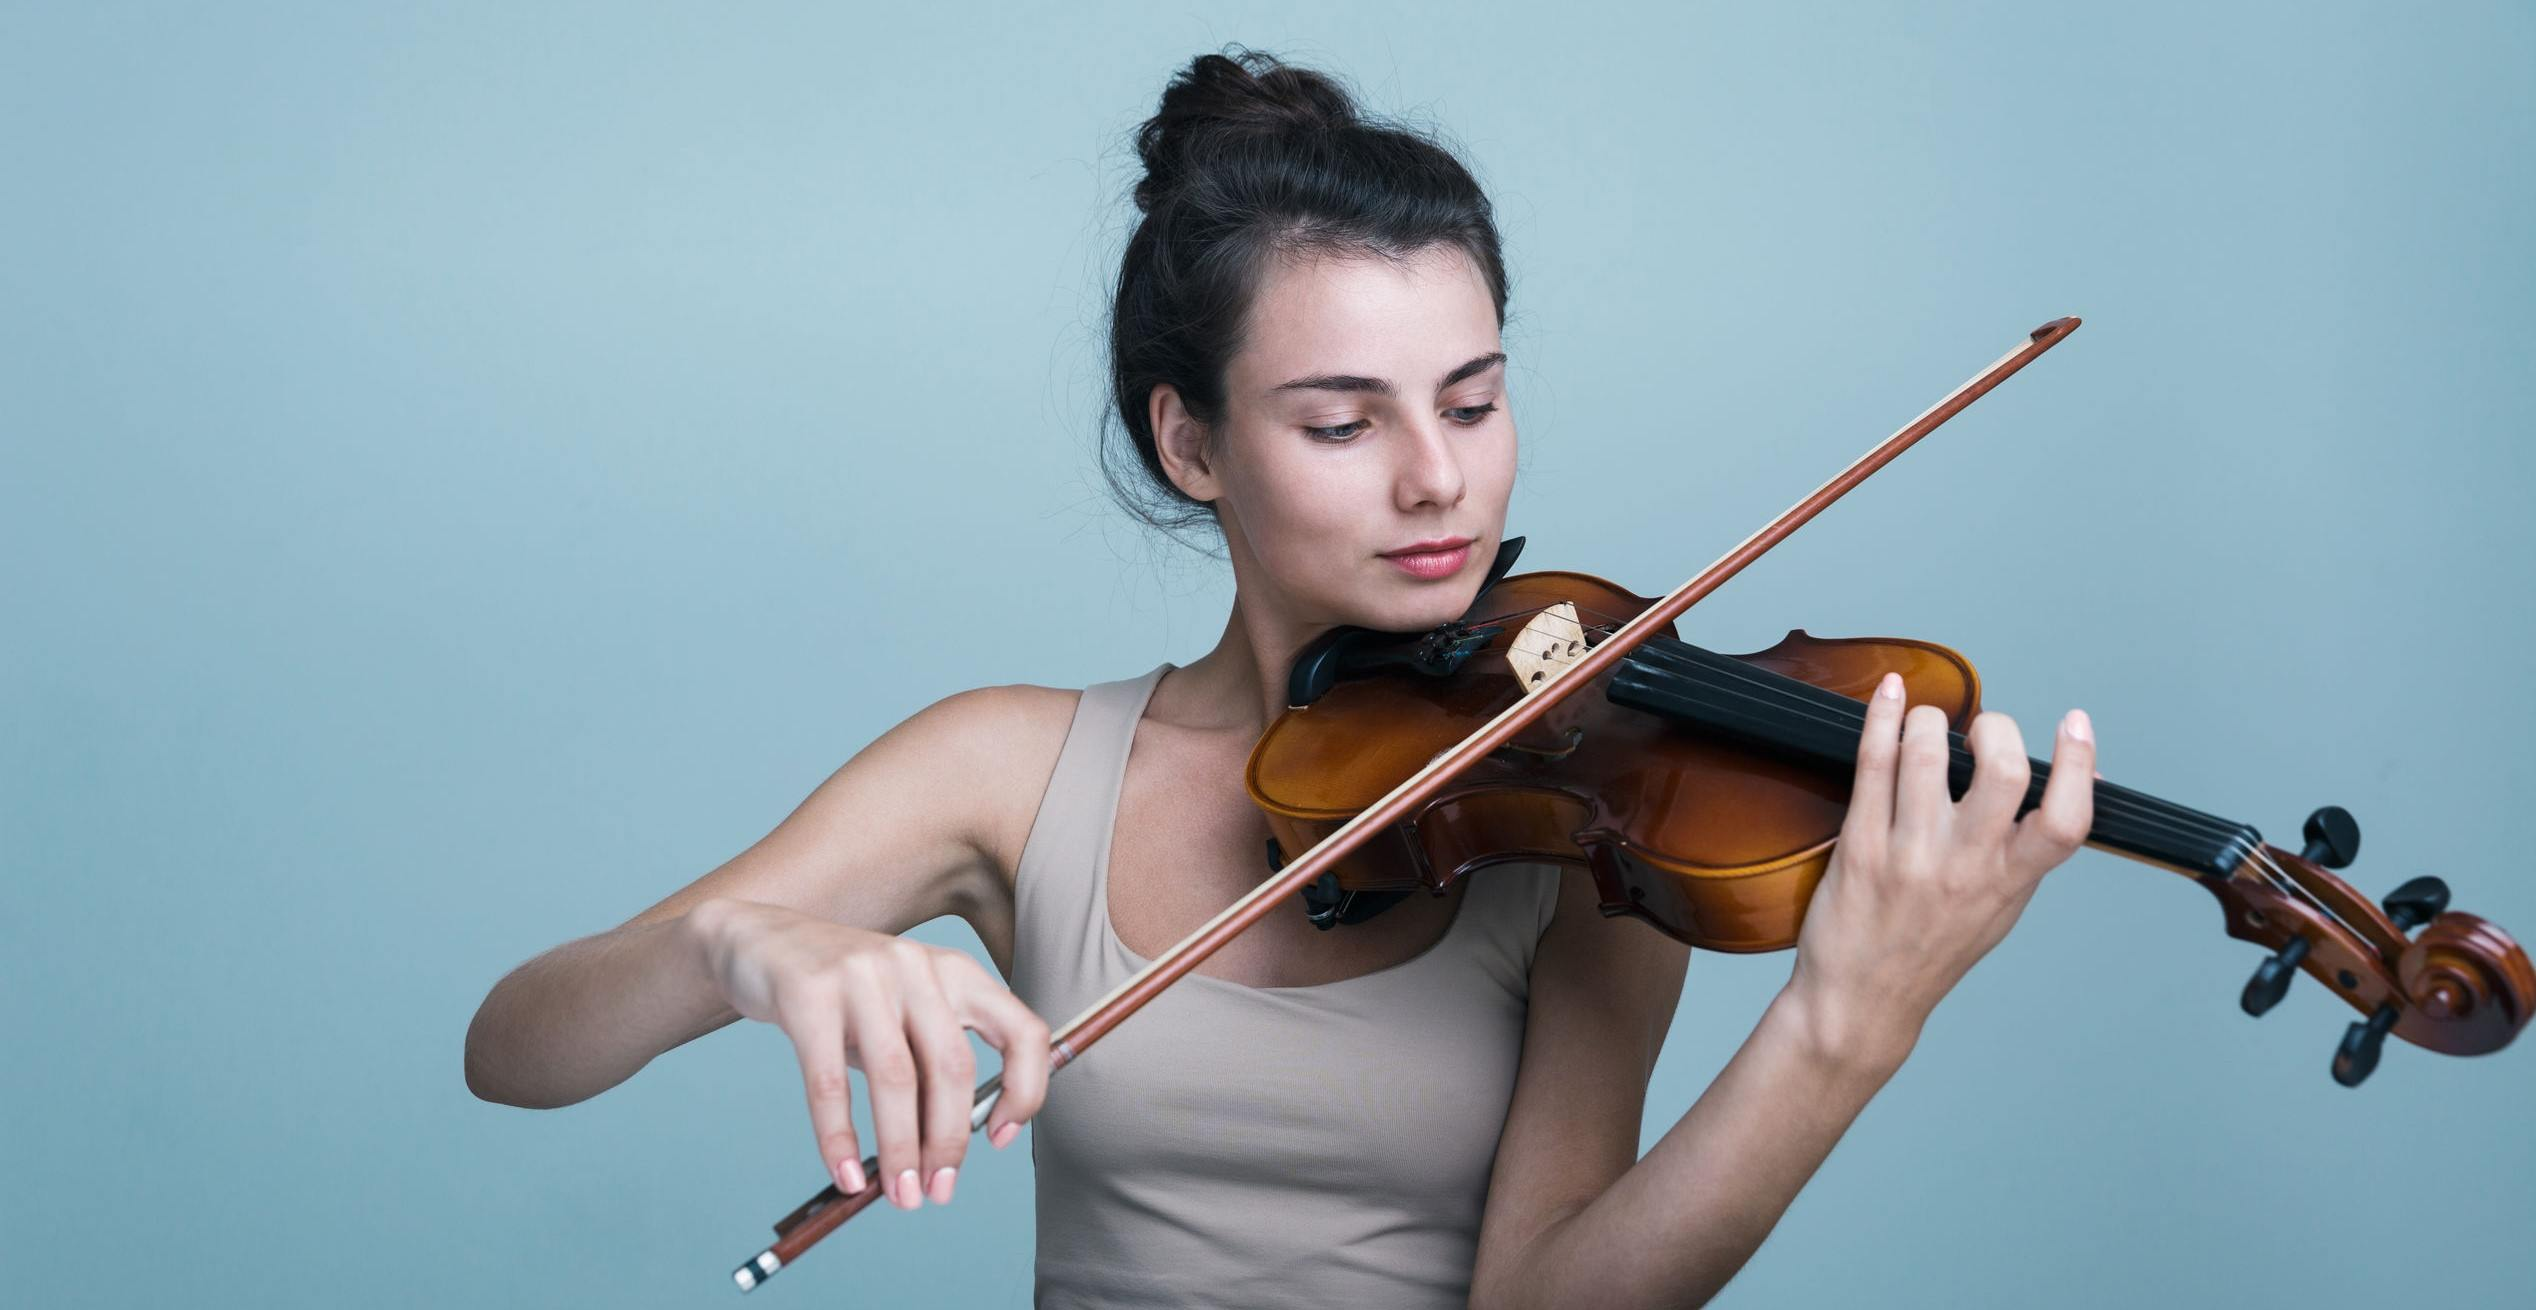 A pic of a violinist, who'd feel like an imposter if she had teammates.